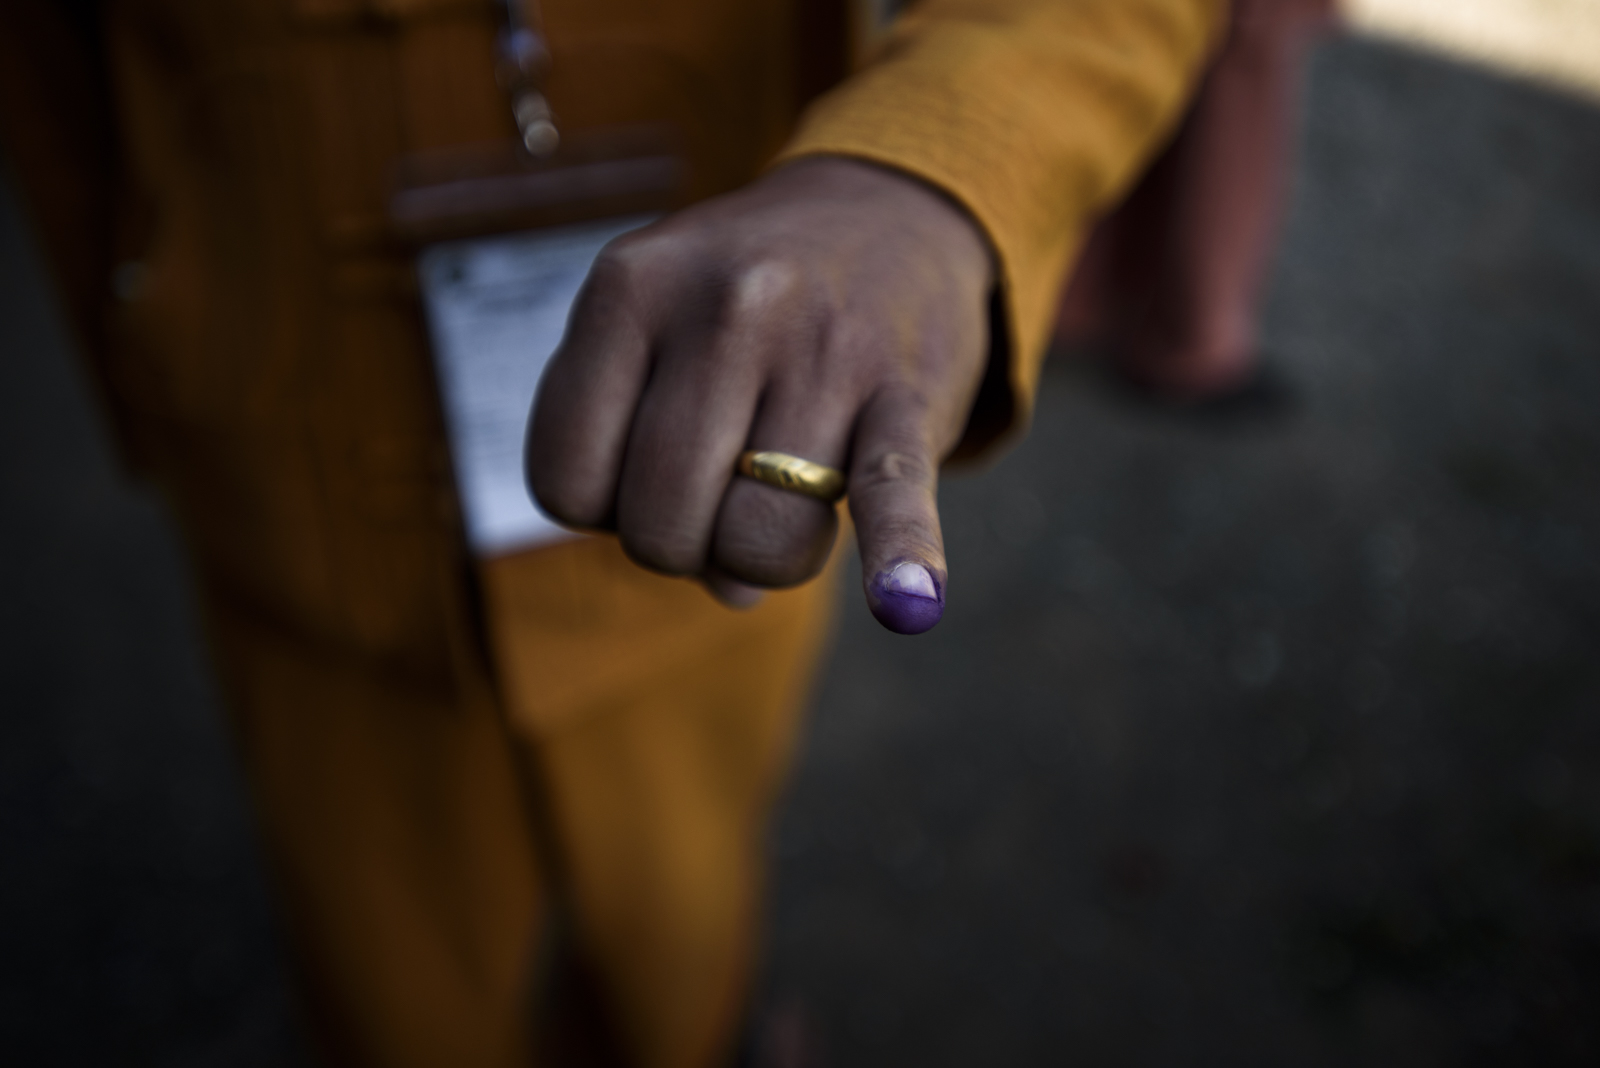 One Leng displays his finger stained with silver nitrate ink showing he has already voted.